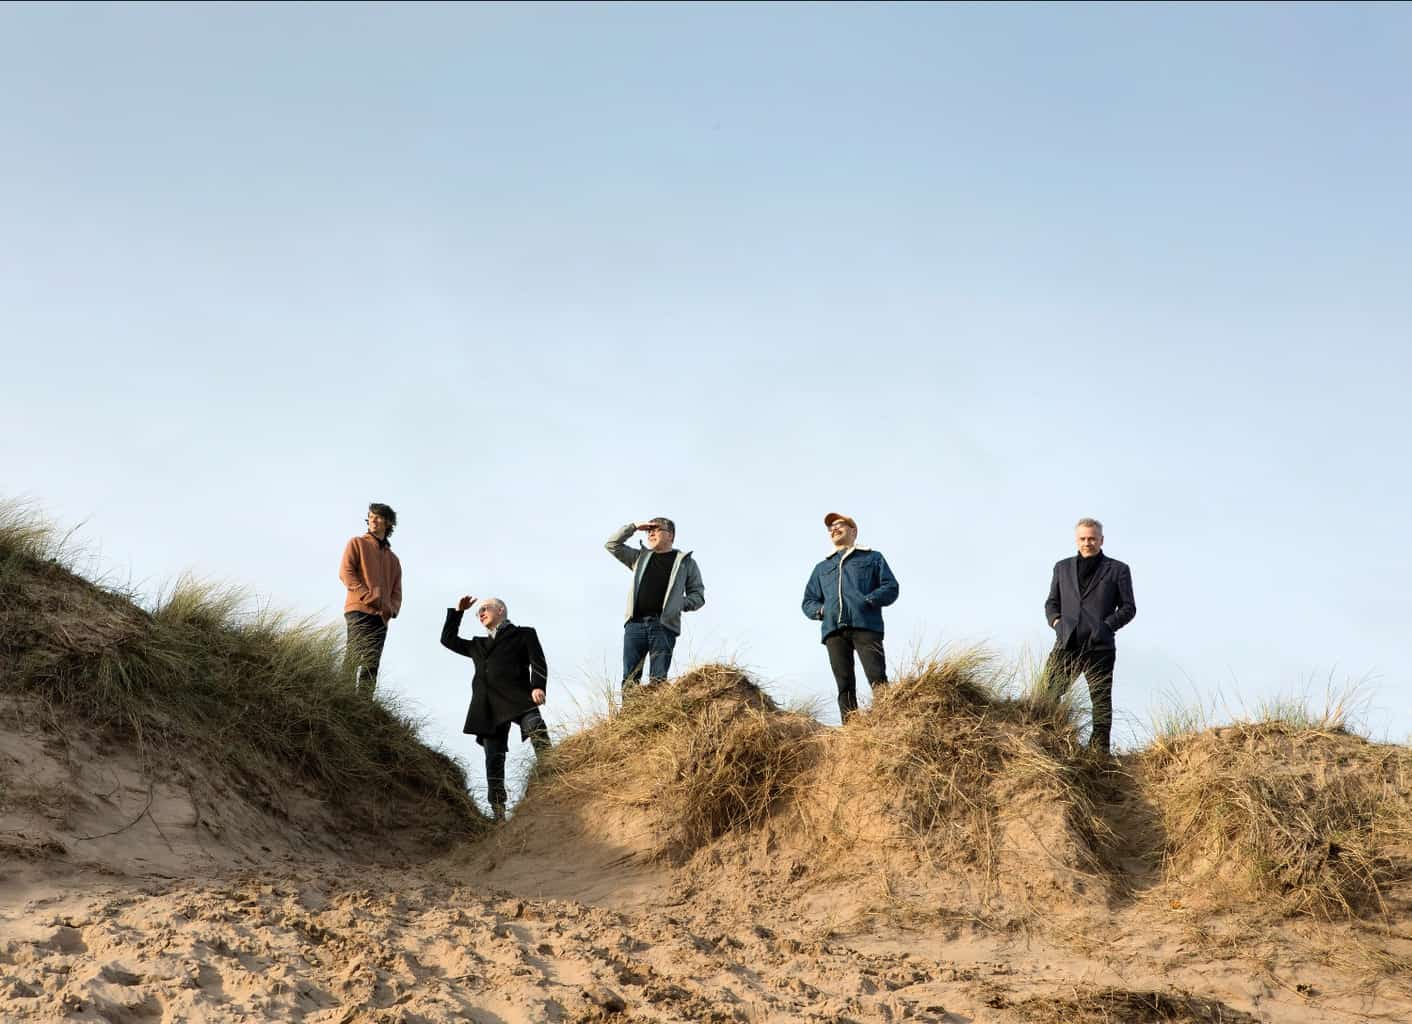 Scene News: TEENAGE FANCLUB Share New Single 'I'm More Inclined' From New Album 'Endless Arcade' To Be Released April 30 via PeMa